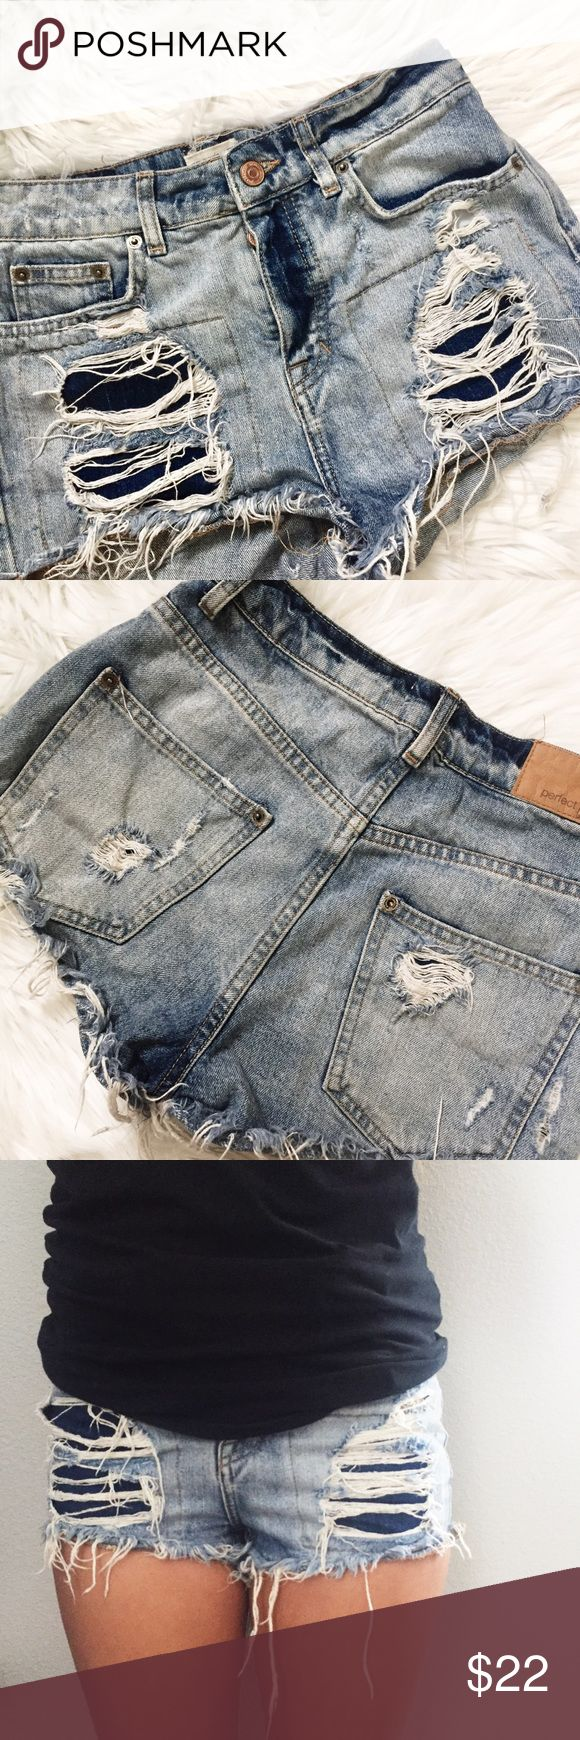 "• BOGO FREE SALE | Distressed denim shorts *BUY ONE, GET ONE FREE SALE. Until 4/2. Please read the first listing in my closet for details!* Tag reads size 34 but it's EUR; equivalent to USA size 4. Great condition. Heavy distress front, light distress back. Acid wash. Button enclosure. Made in Turkey.  · 100% cotton · Length | 10"" · Inseam 